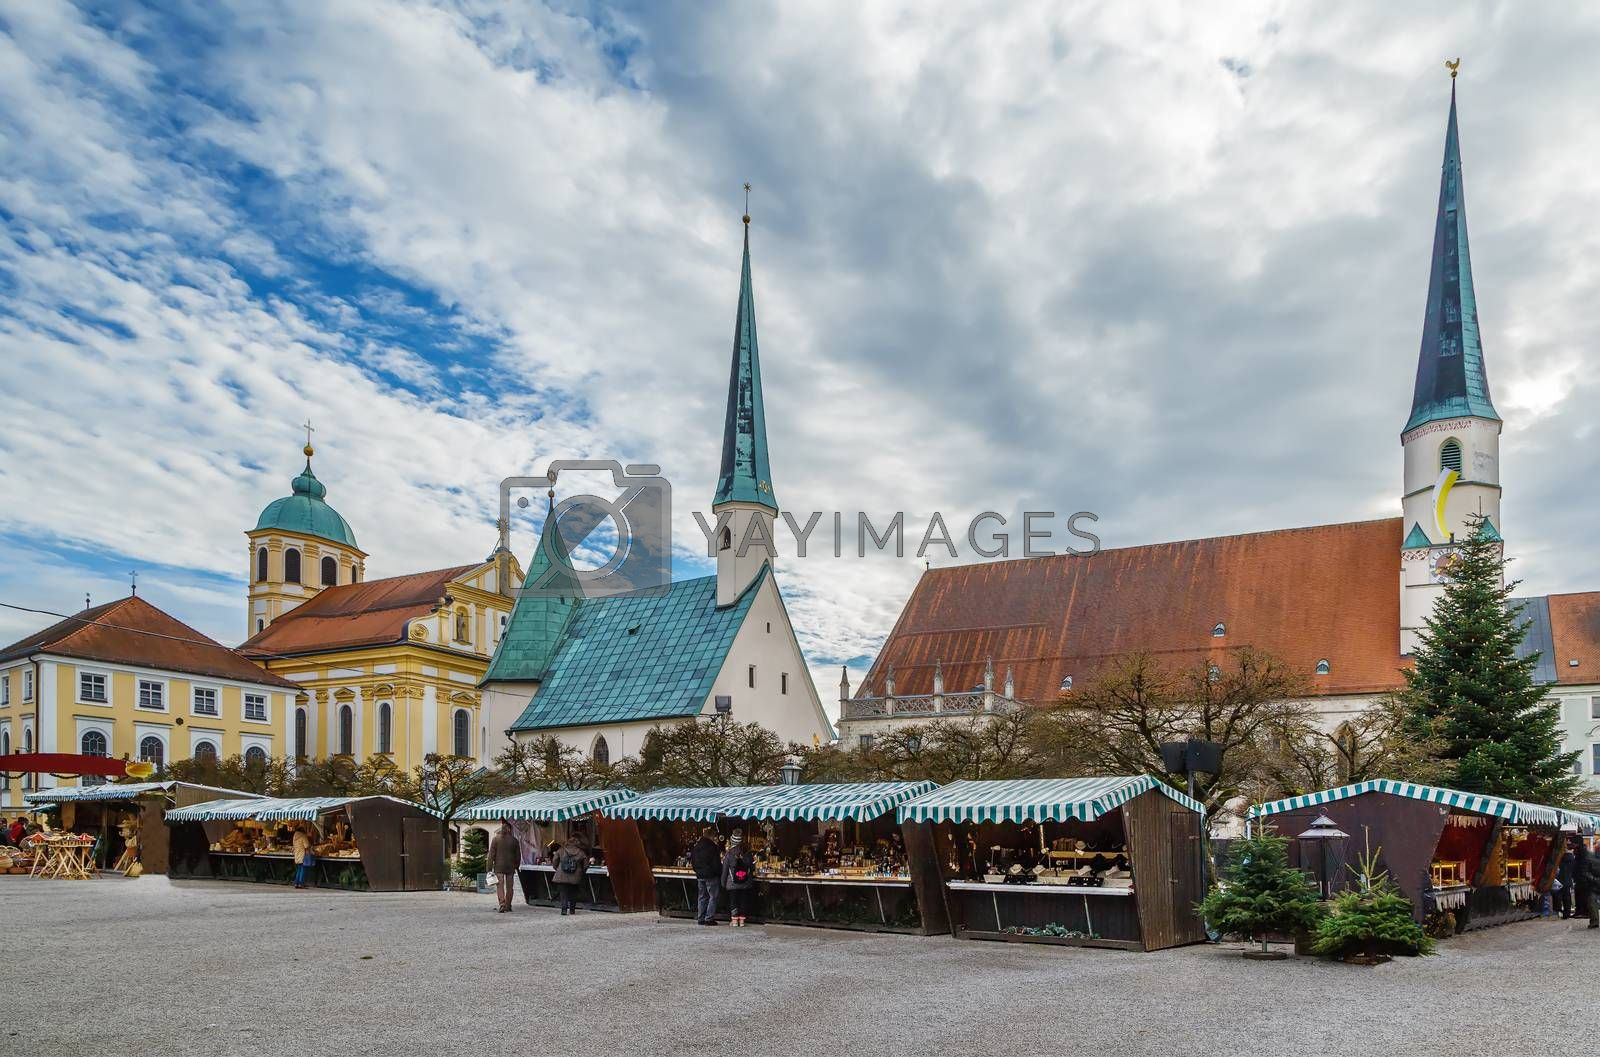 Main square with Christmas market, Altotting, Germany